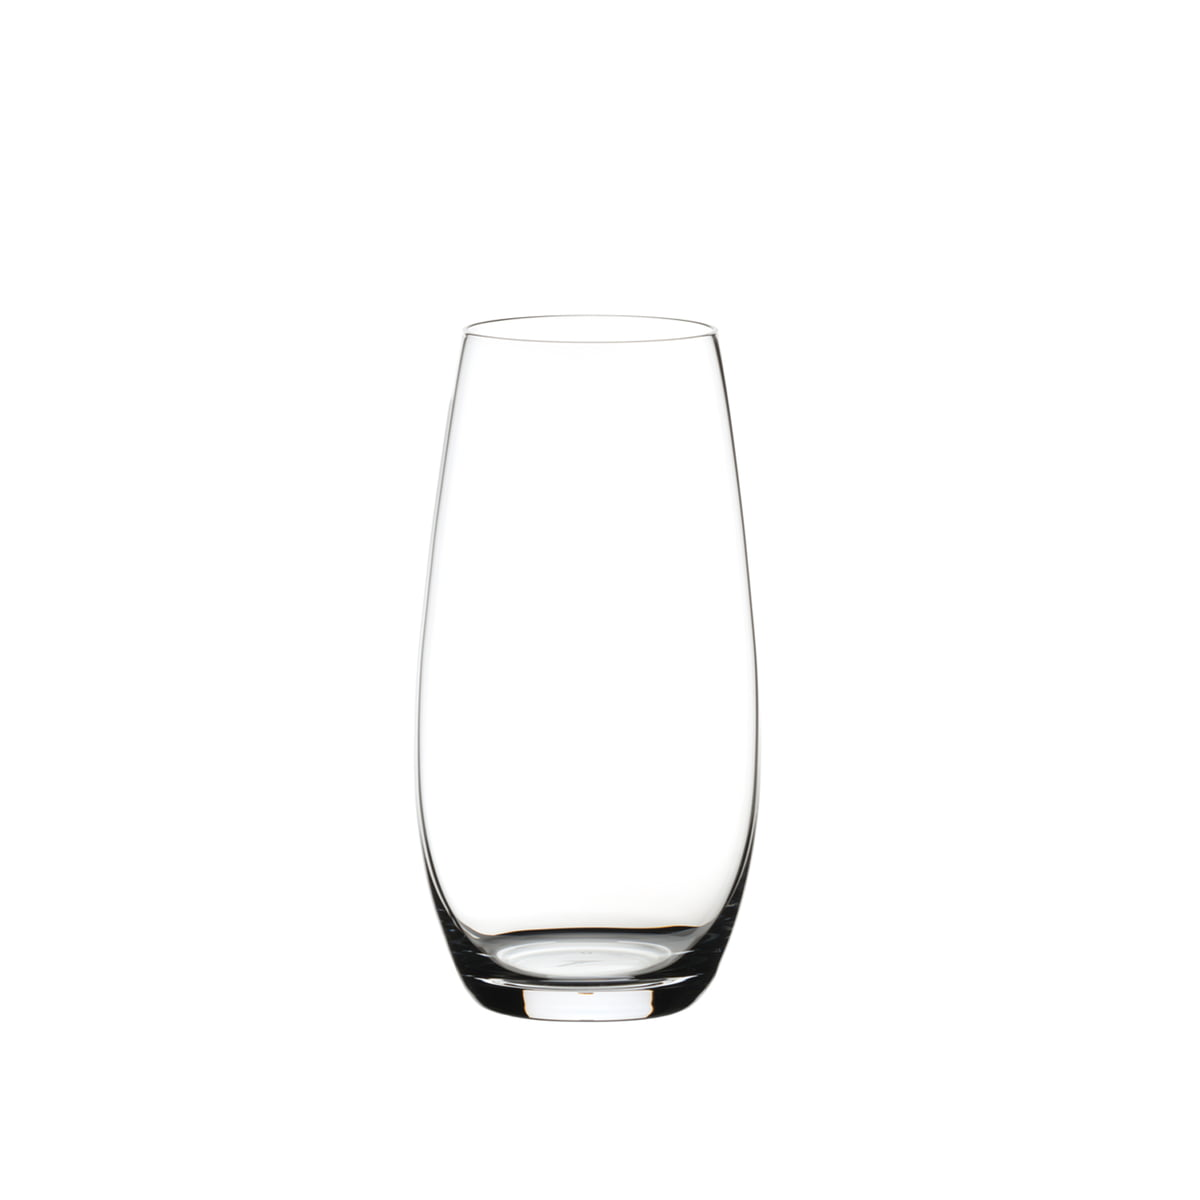 O Wine Champagne Glass Set Of 2 By Riedel